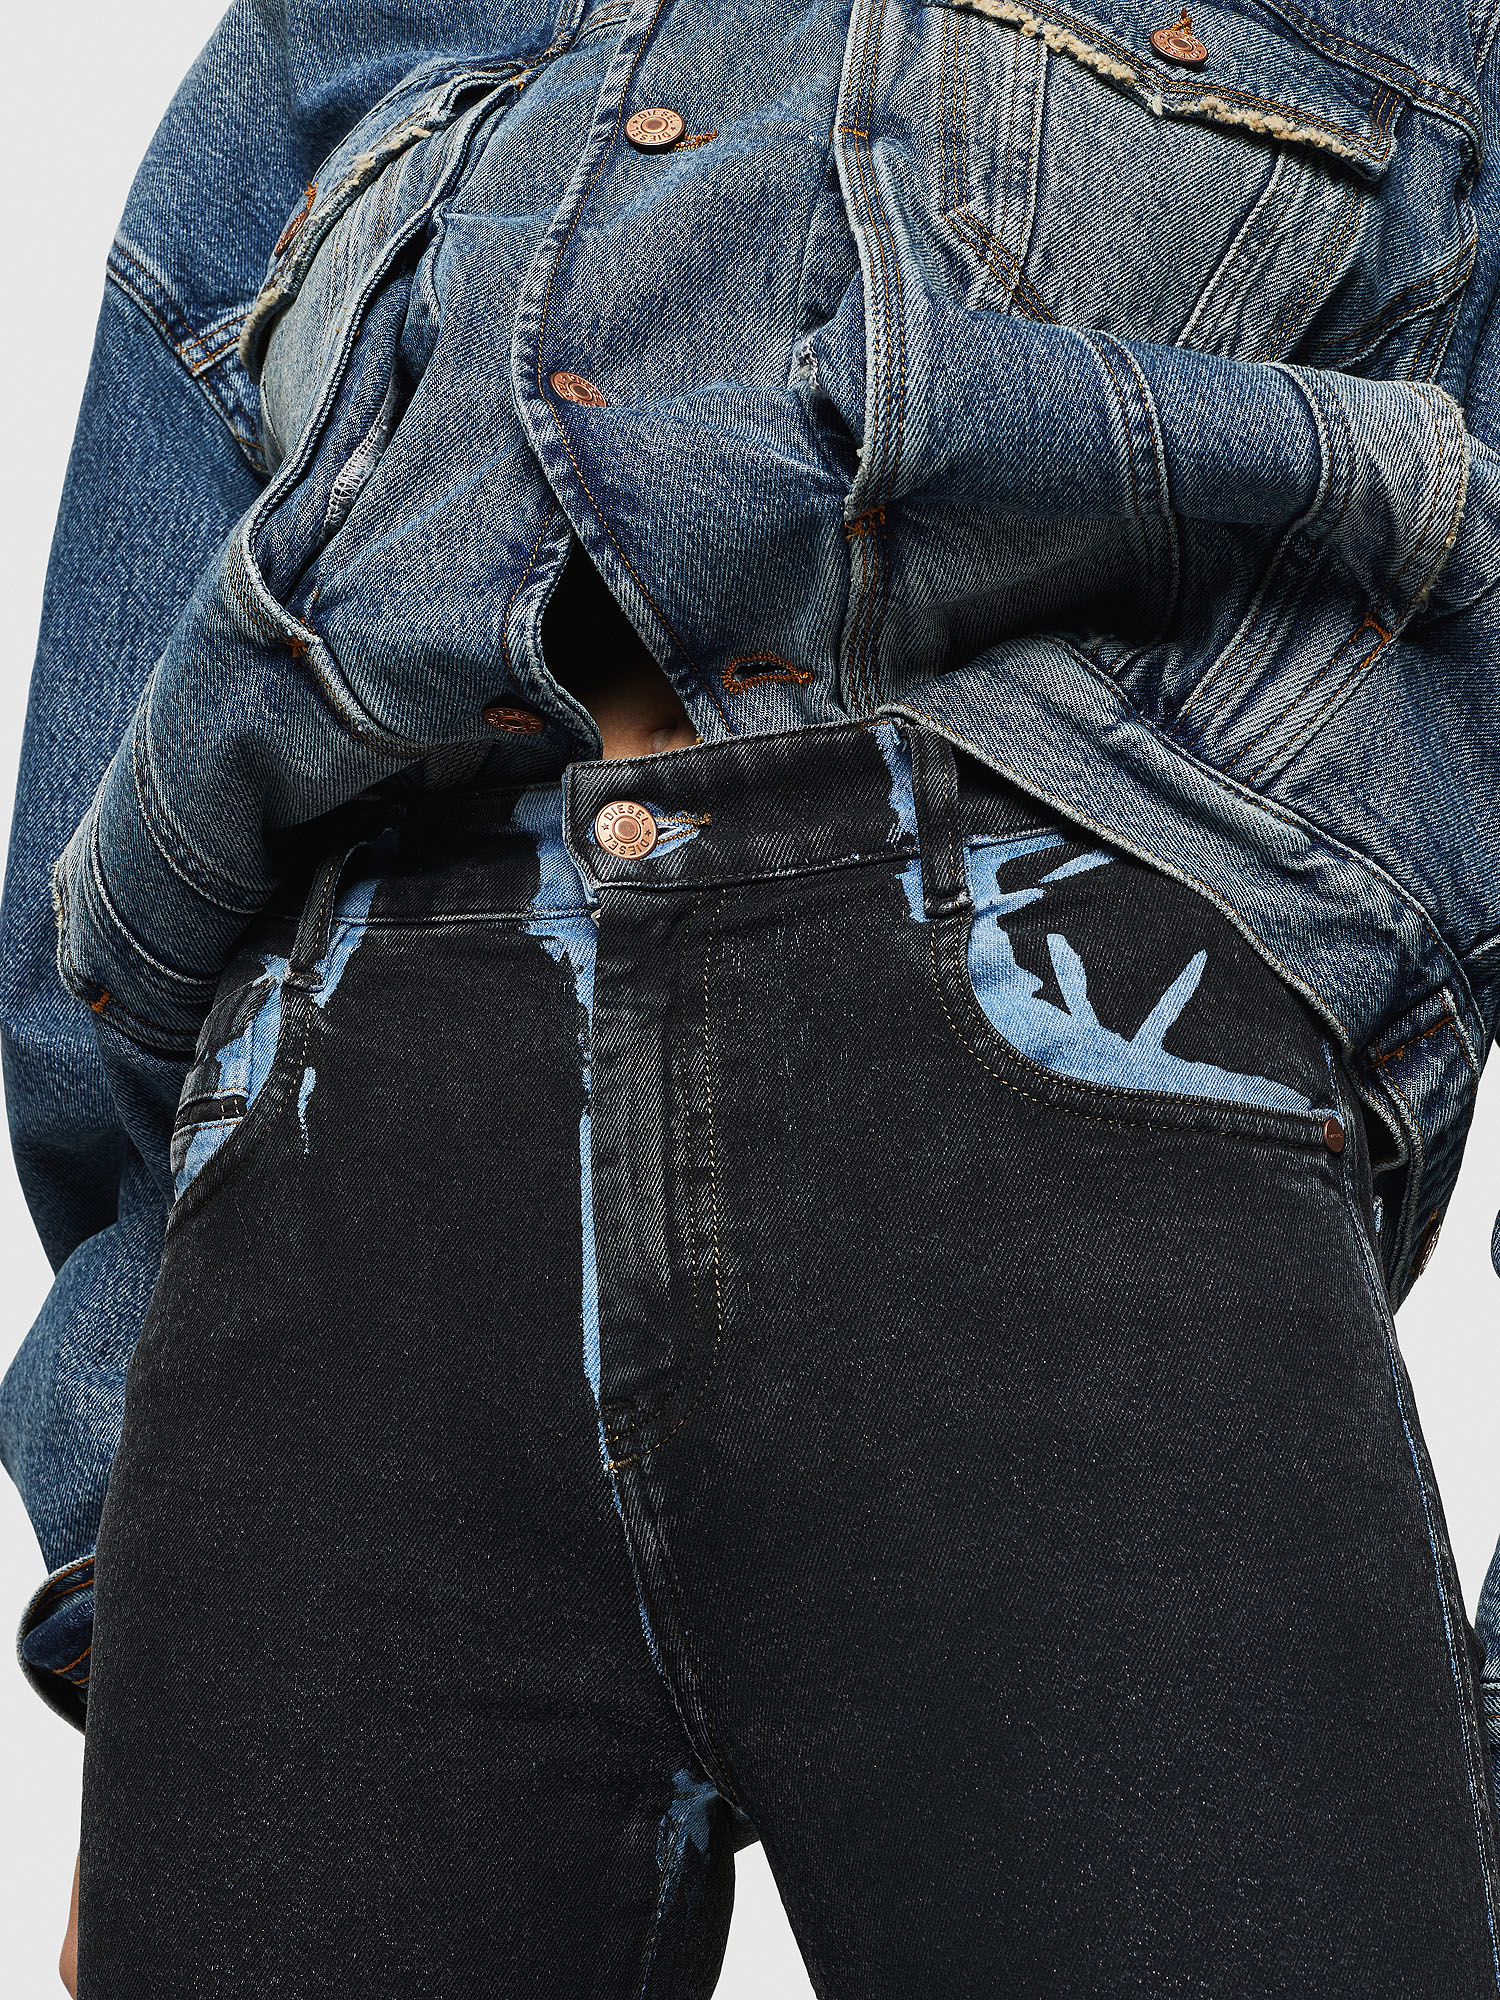 Diesel - Slandy High 0094B,  - Jeans - Image 3